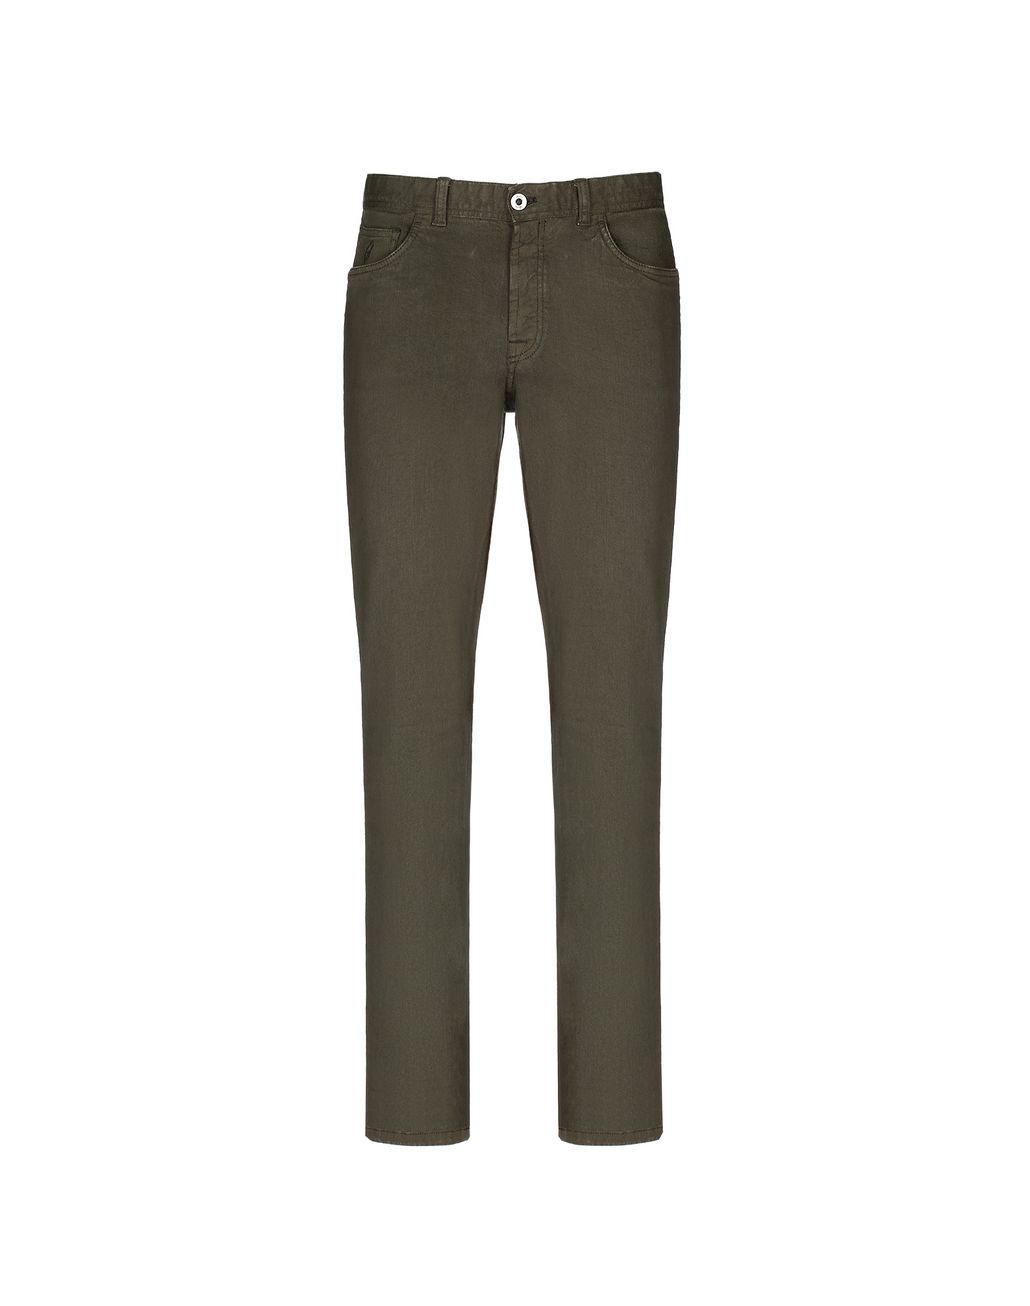 BRIONI Green Denim Trousers Trousers Man f